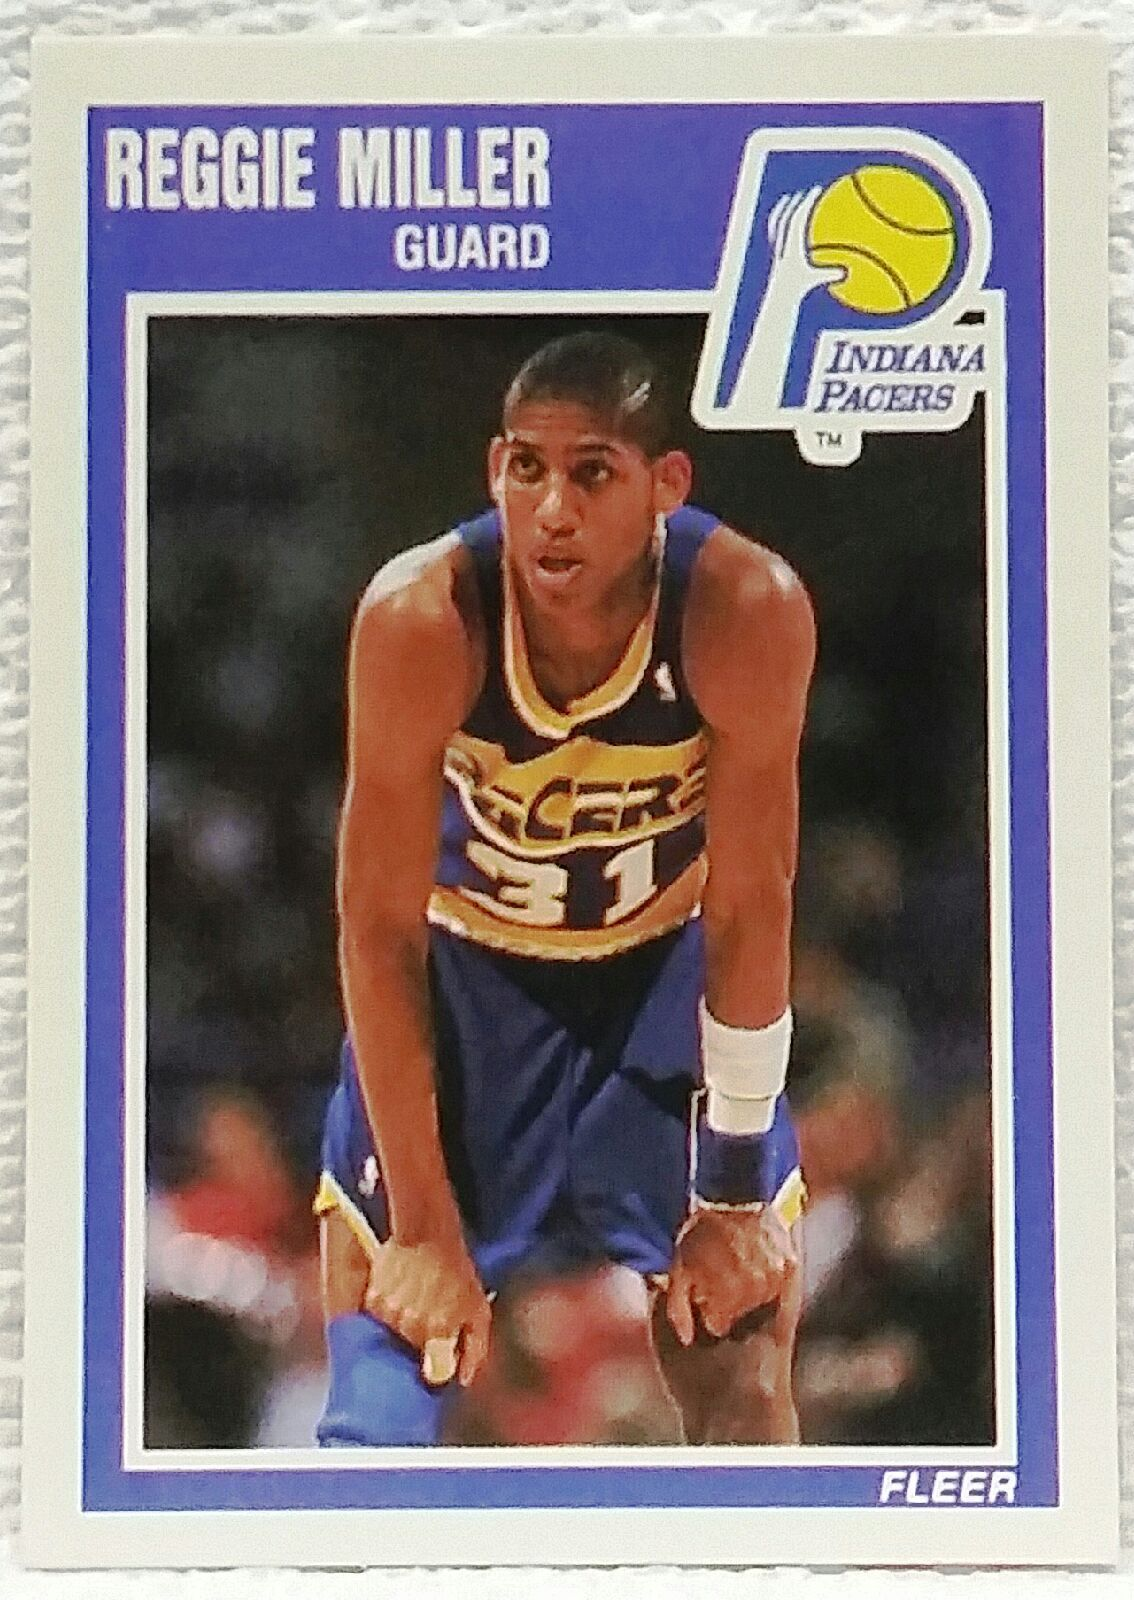 1989 Fleer #65 Reggie Miller, 9.5 Mint+, 2nd Year Card, Indiana Pacers